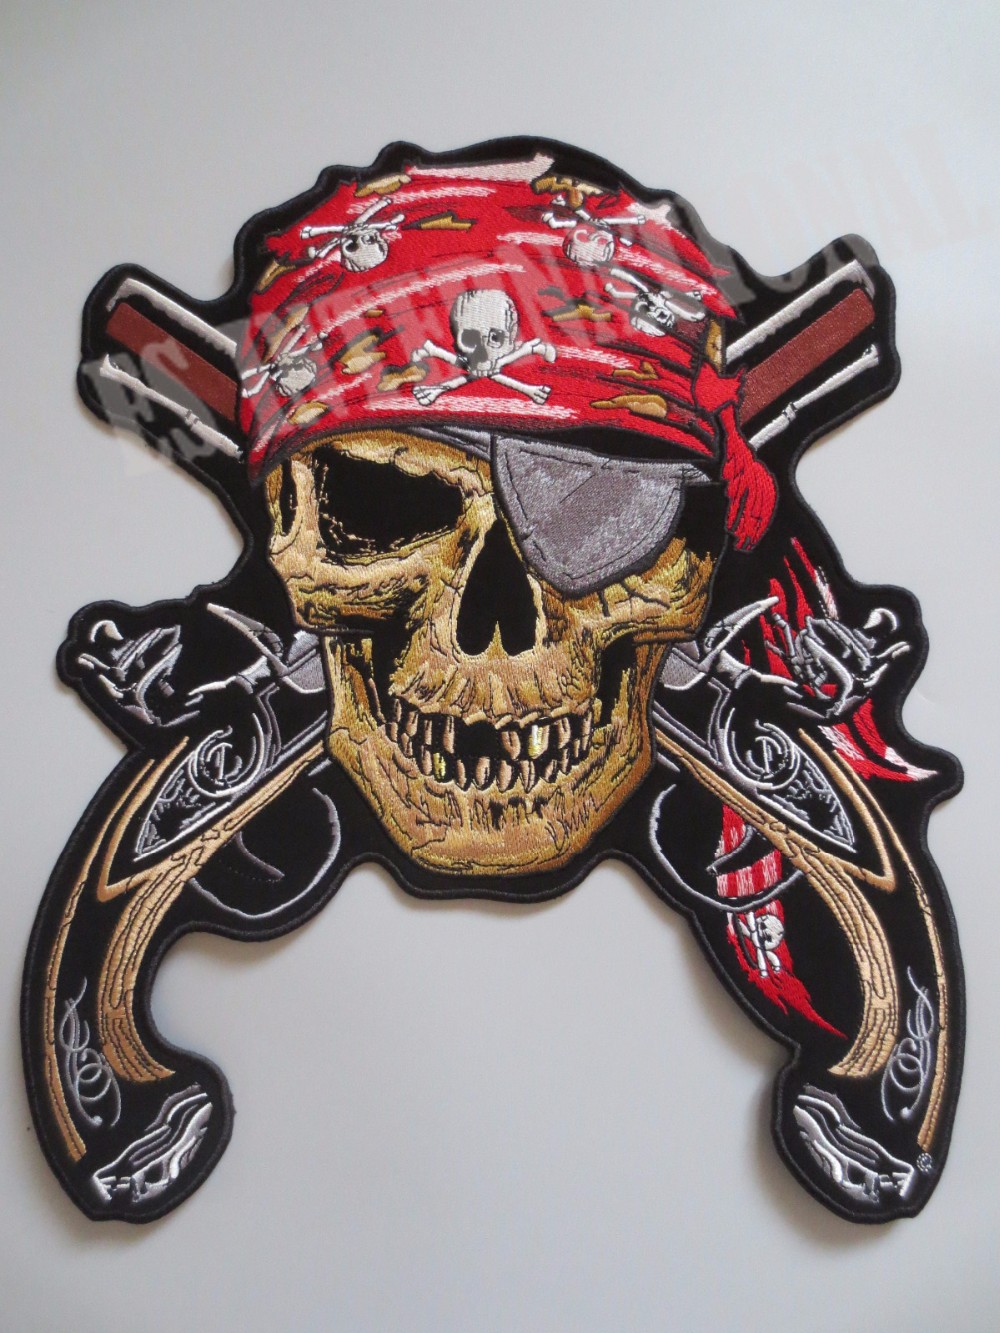 12.6 inches large Embroidery Patches for Jacket Back Vest Motorcycle Club Biker MC Sew on Pirate Skull Double Guns single Eye